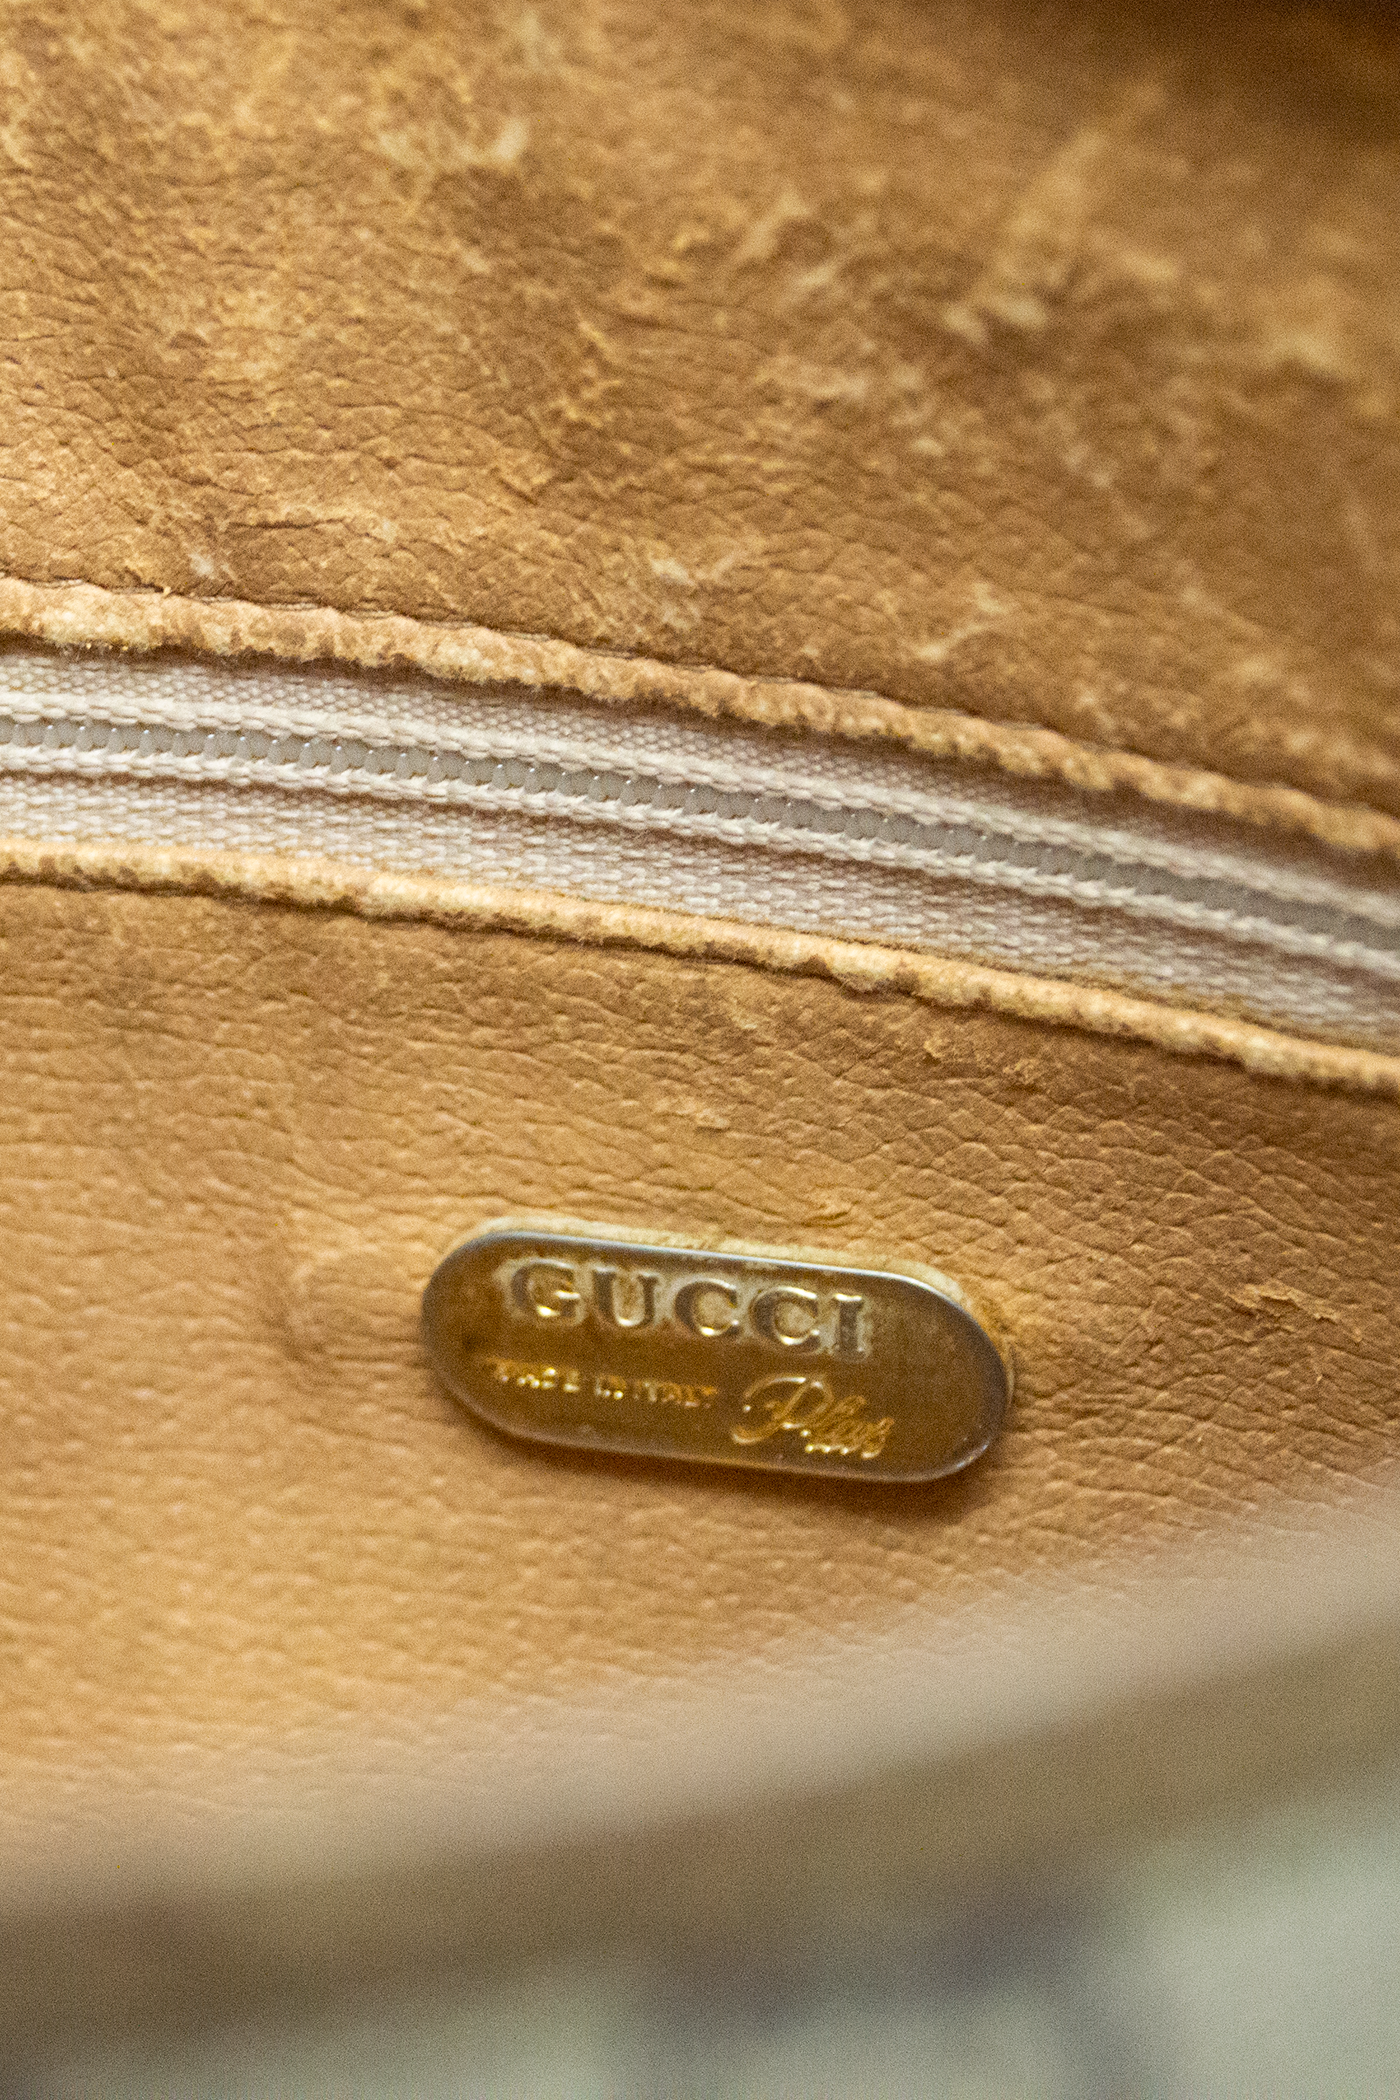 interior of vintage gucci bag